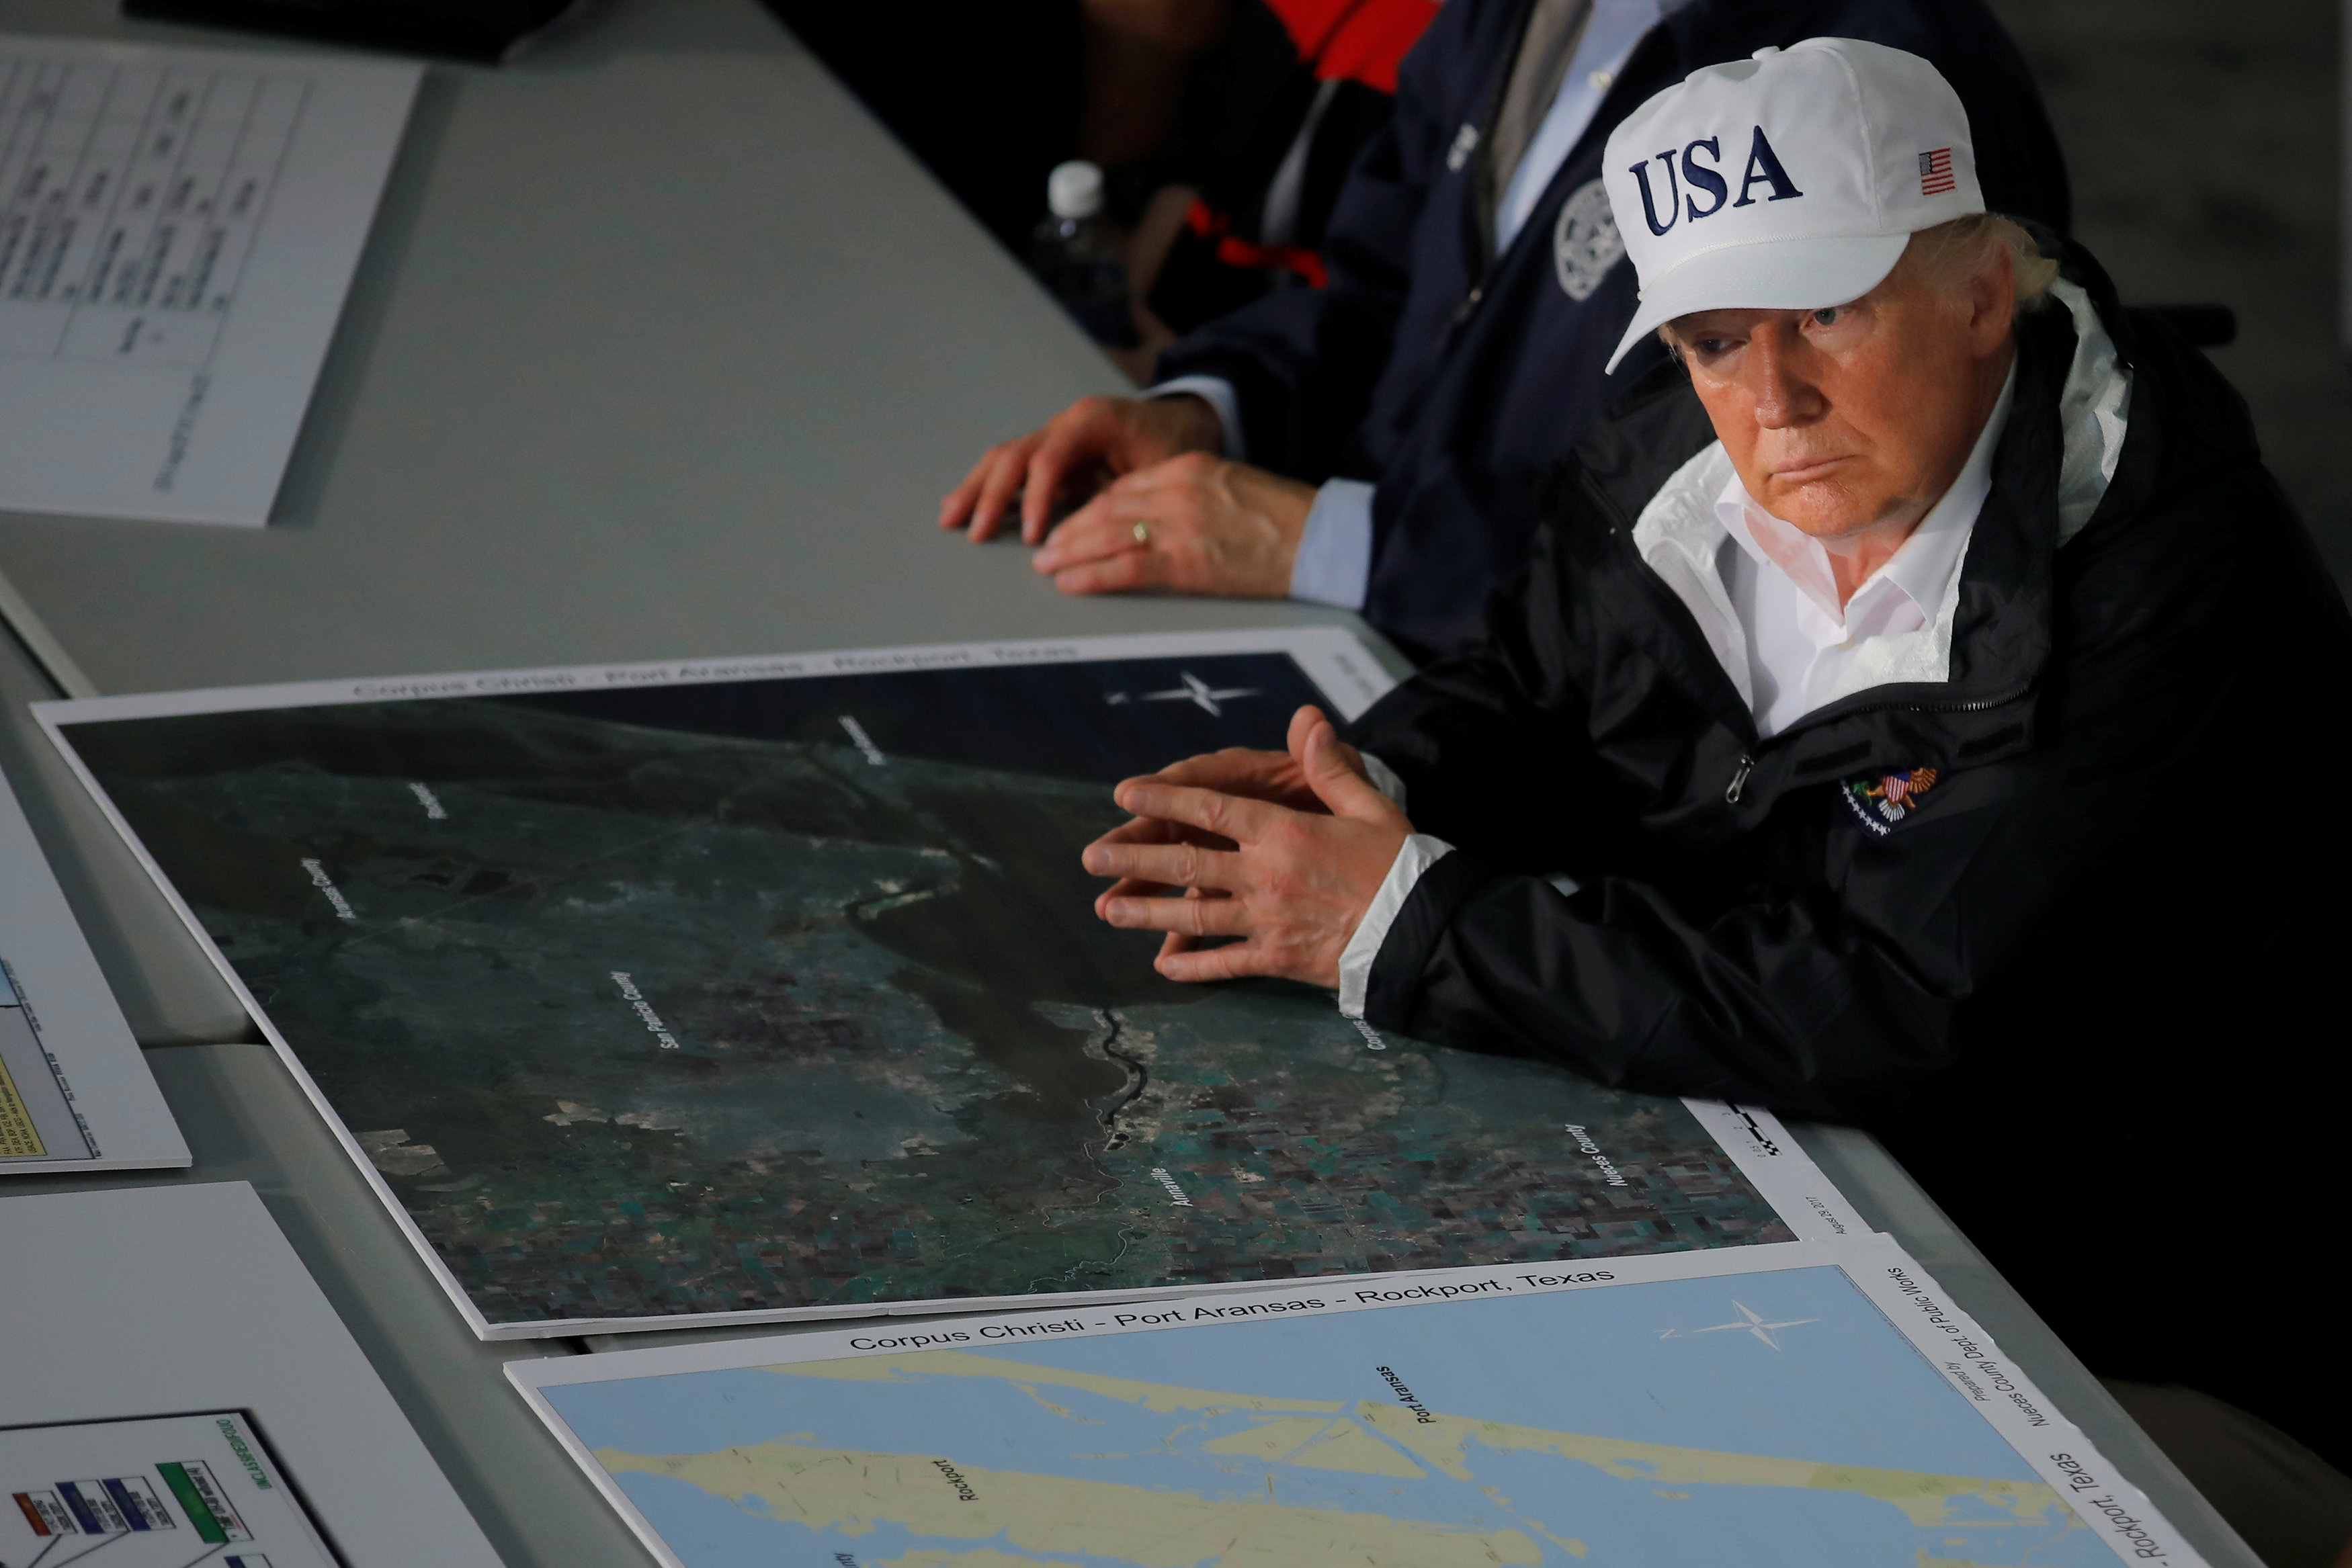 U.S. President Donald Trump receives a briefing on Tropical Storm Harvey relief efforts in Corpus Christi, Texas, U.S., August 29, 2017. (REUTERS/Carlos Barria)